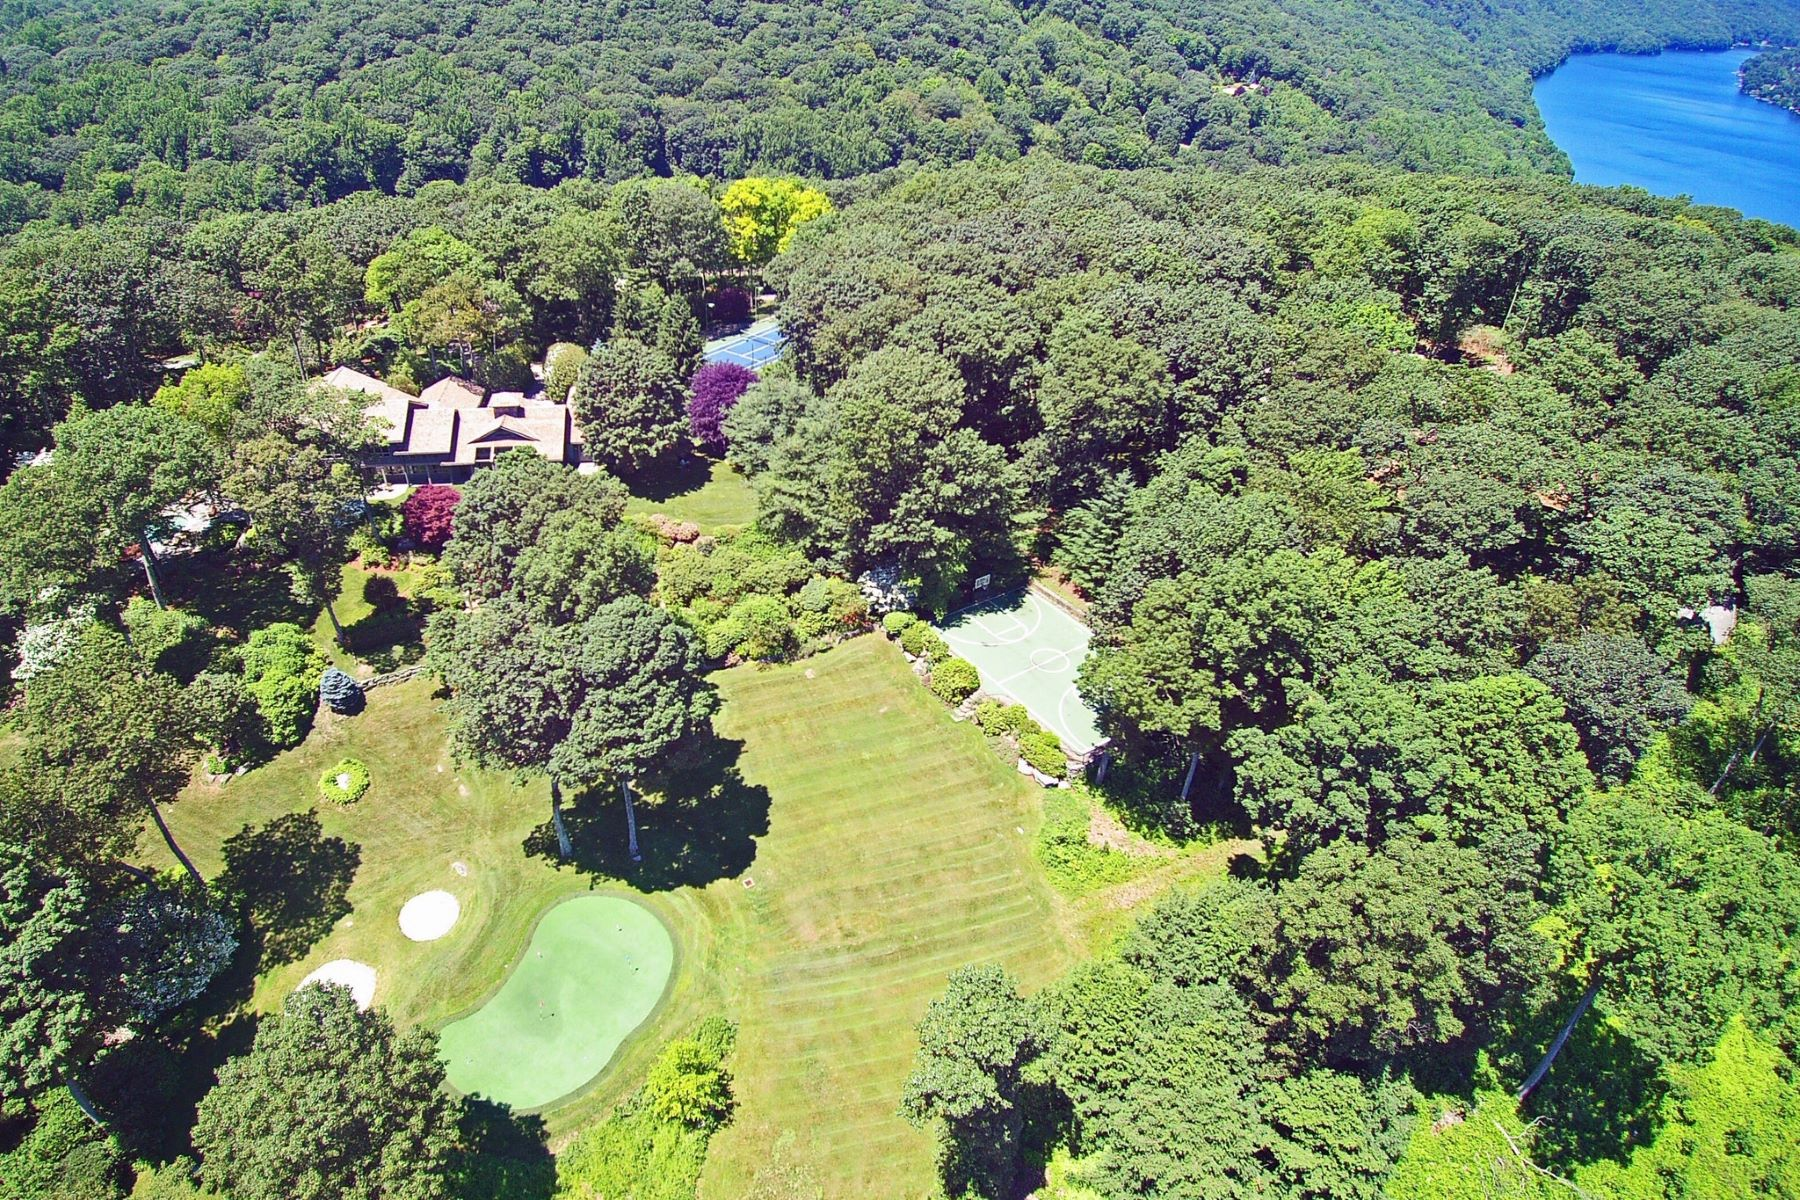 Single Family Homes for Sale at ULTIMATE RESORT LIFESTYLE! 158/154 Shortwoods Road New Fairfield, Connecticut 06812 United States